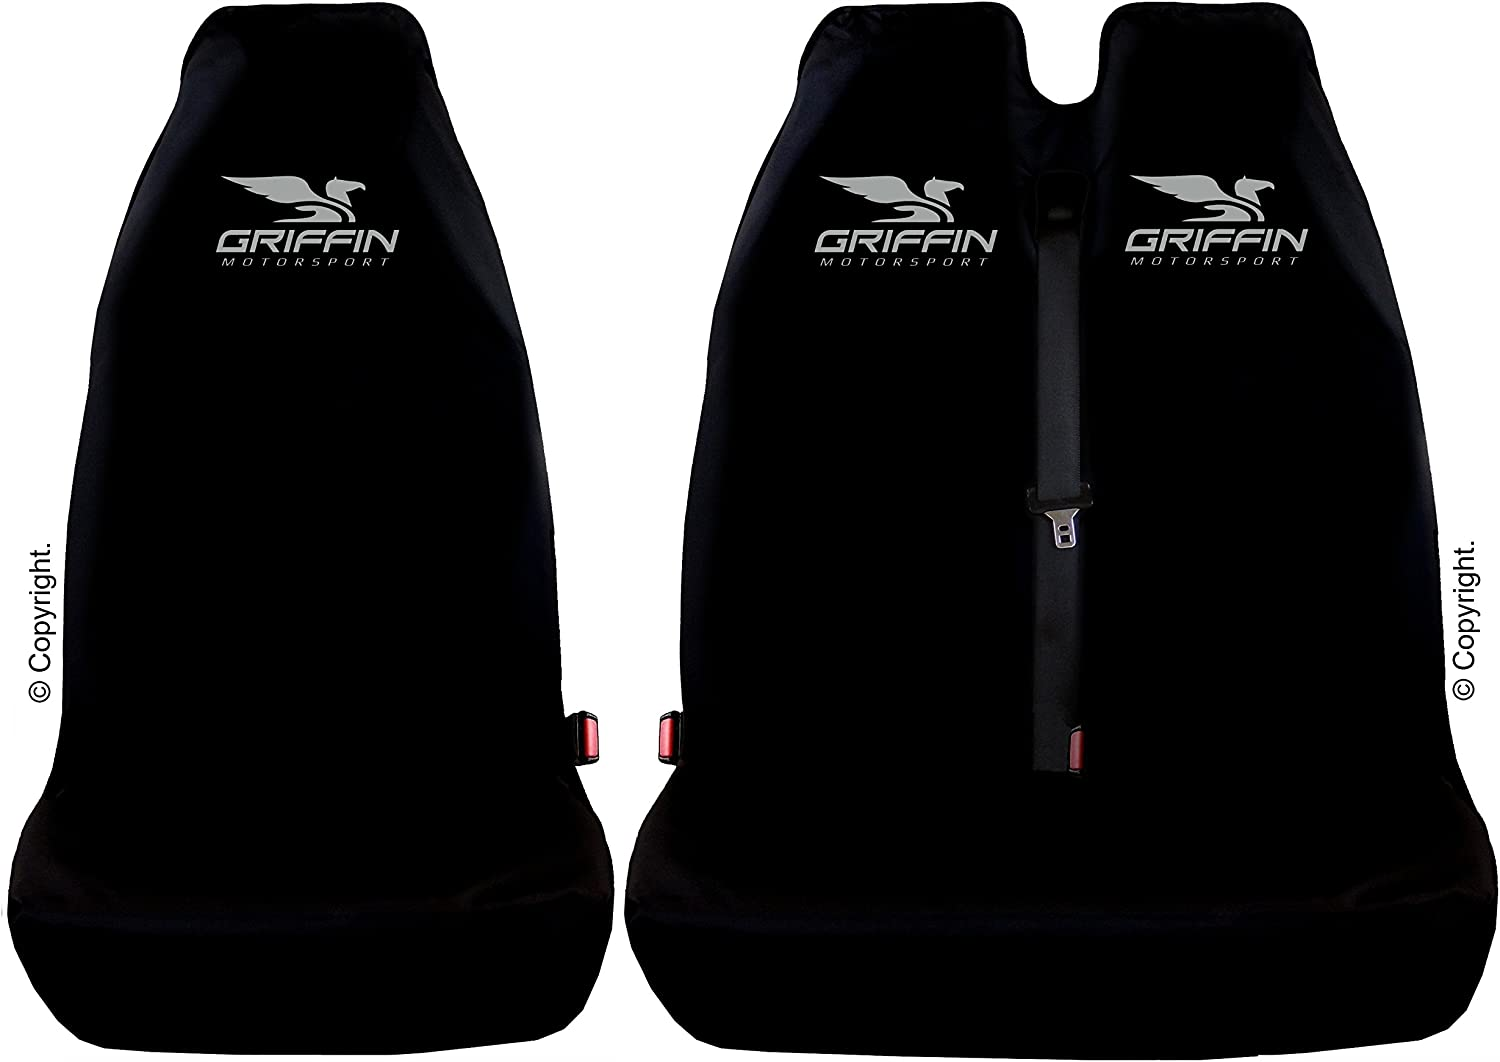 GRIFFIN MOTORSPORT Genuine Protective Single /& Twin Seat Covers in BLACK British Made Quality VIVARO COMPATIBLE